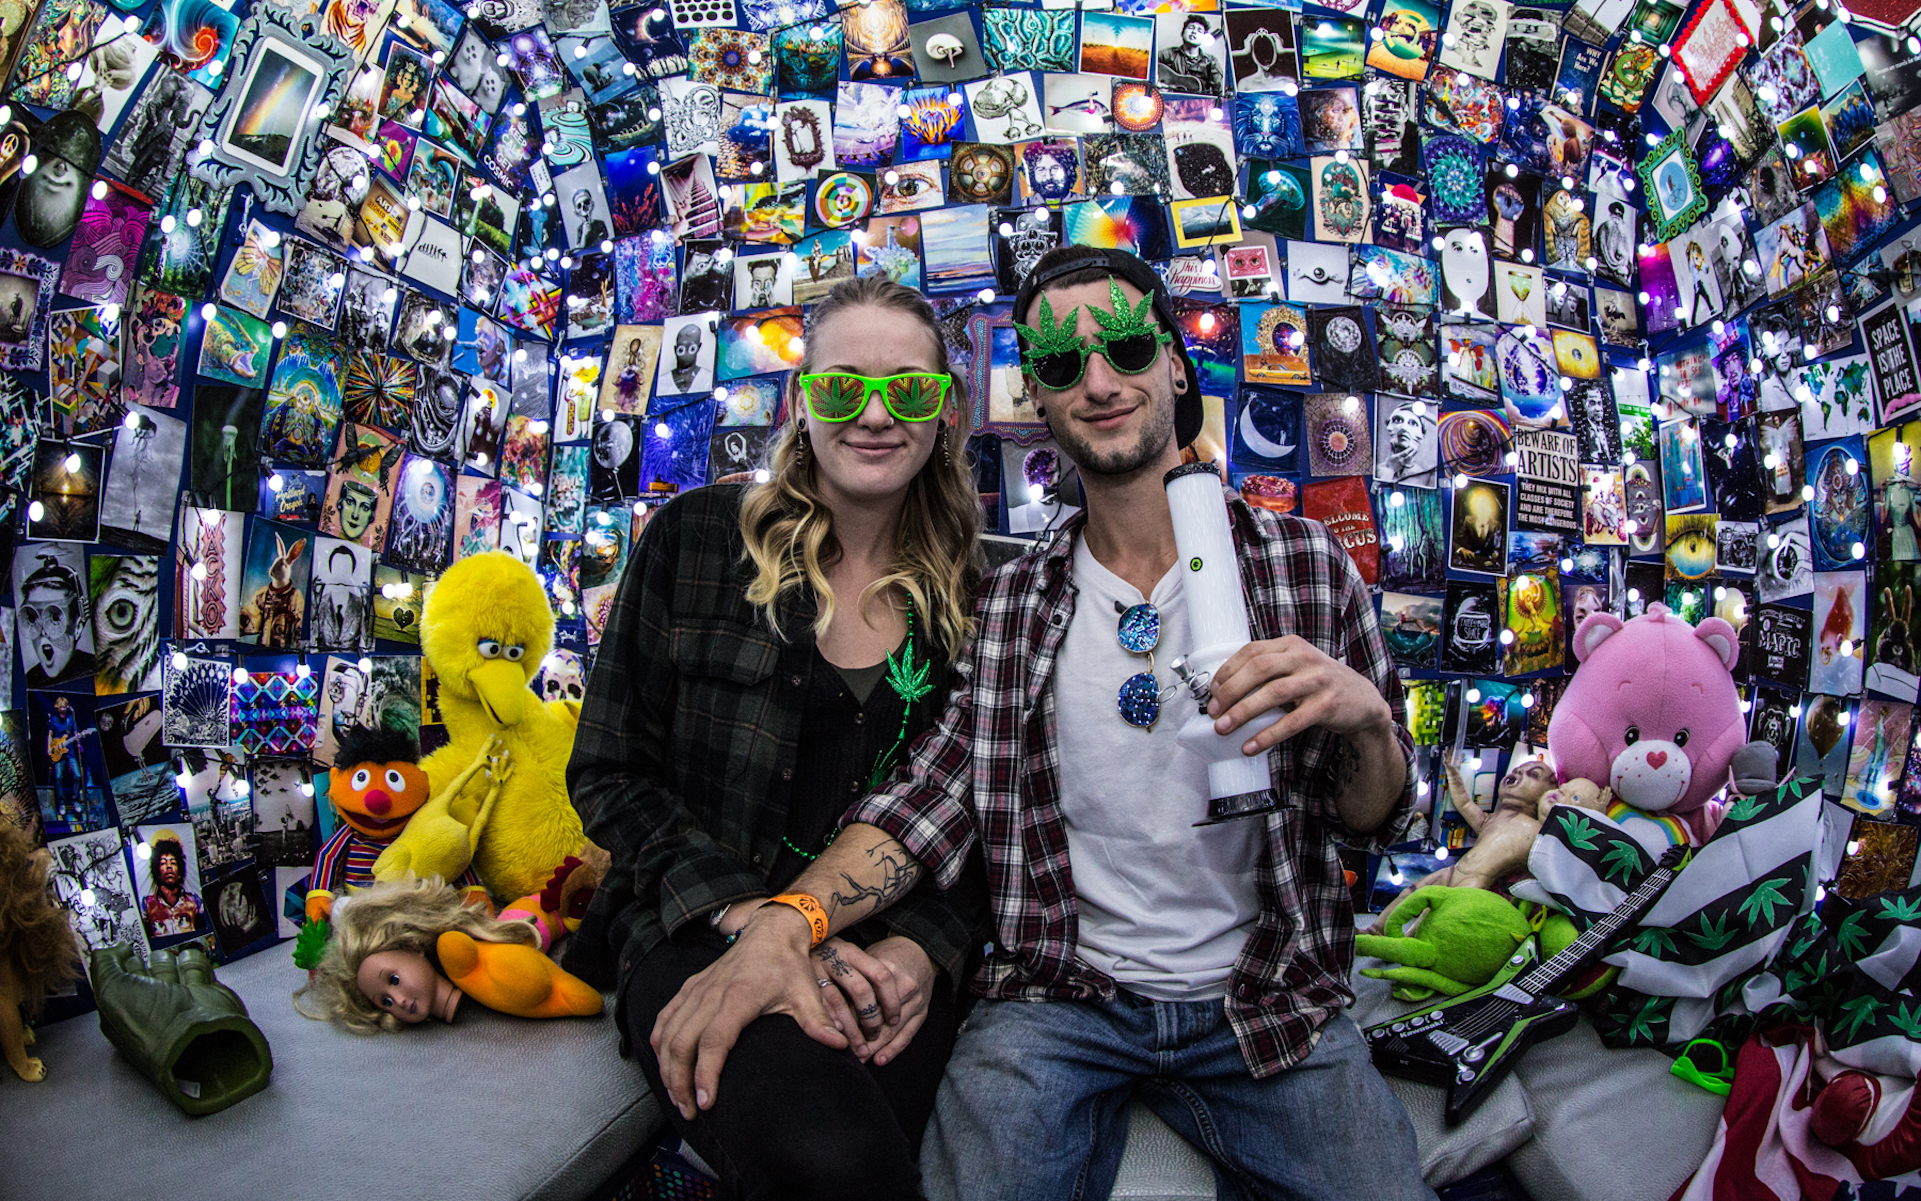 International visitors join California cannabis legends, locals, and first-timers for a global cannabis cultural moment. (Courtesy Emerald Cup)